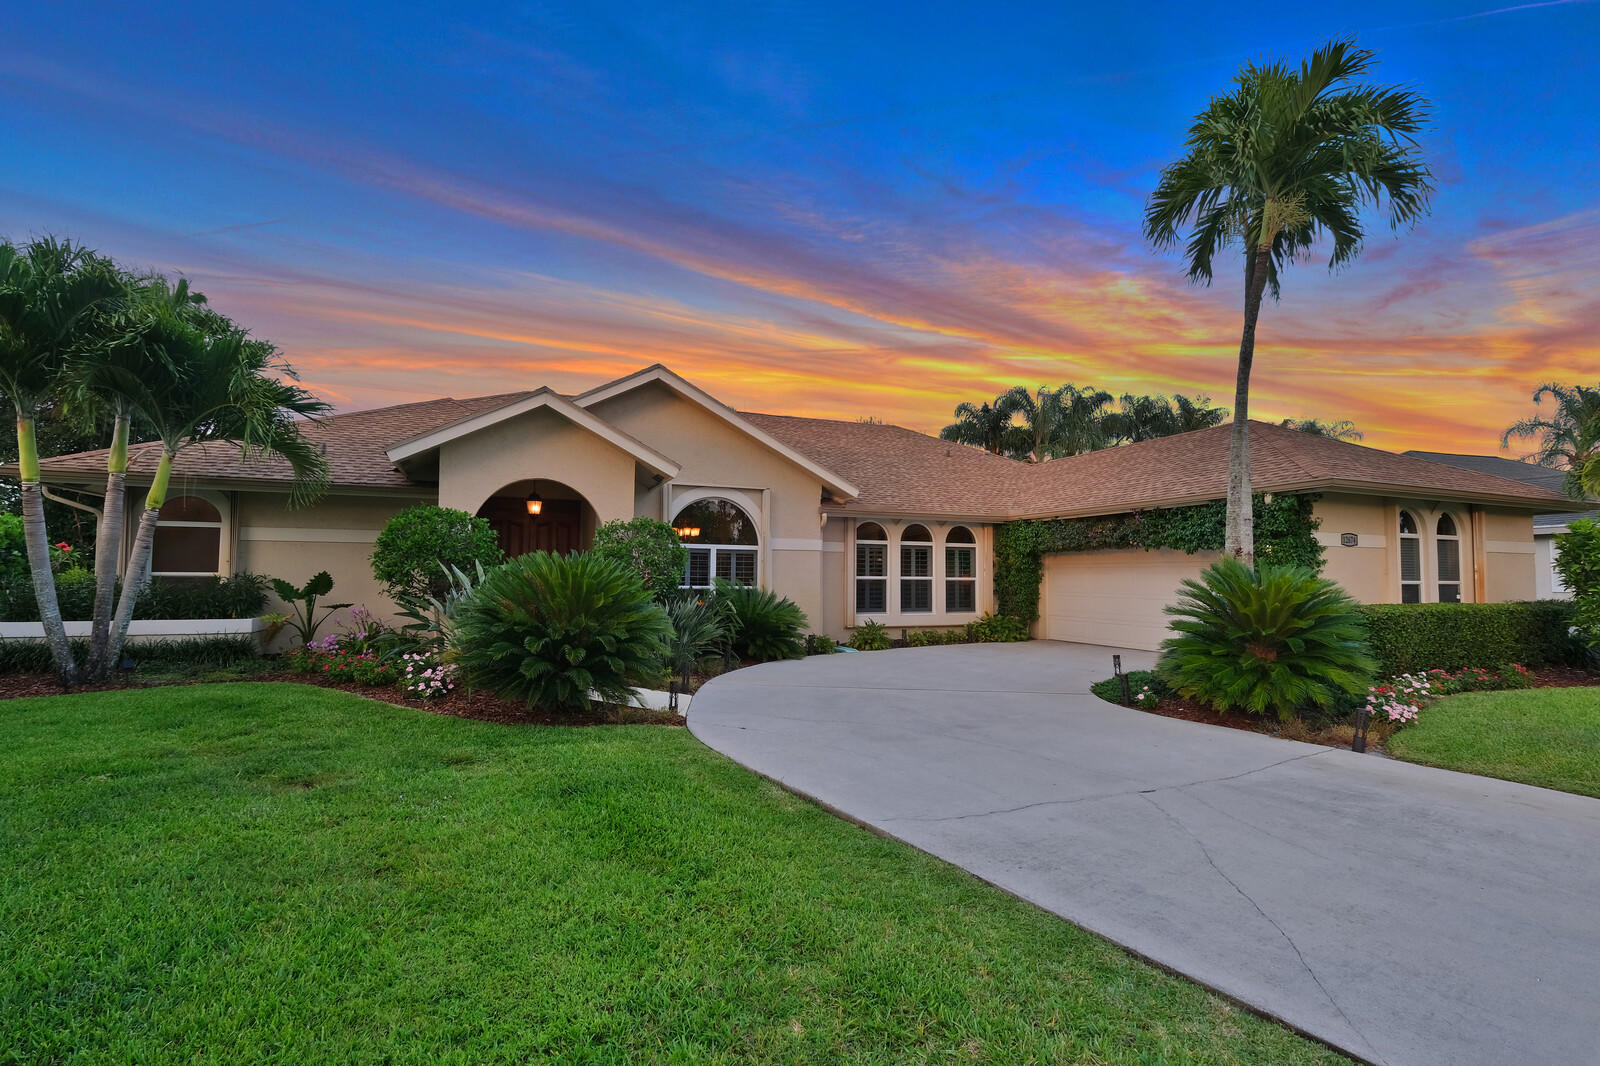 12674  Headwater Circle  For Sale 10718814, FL